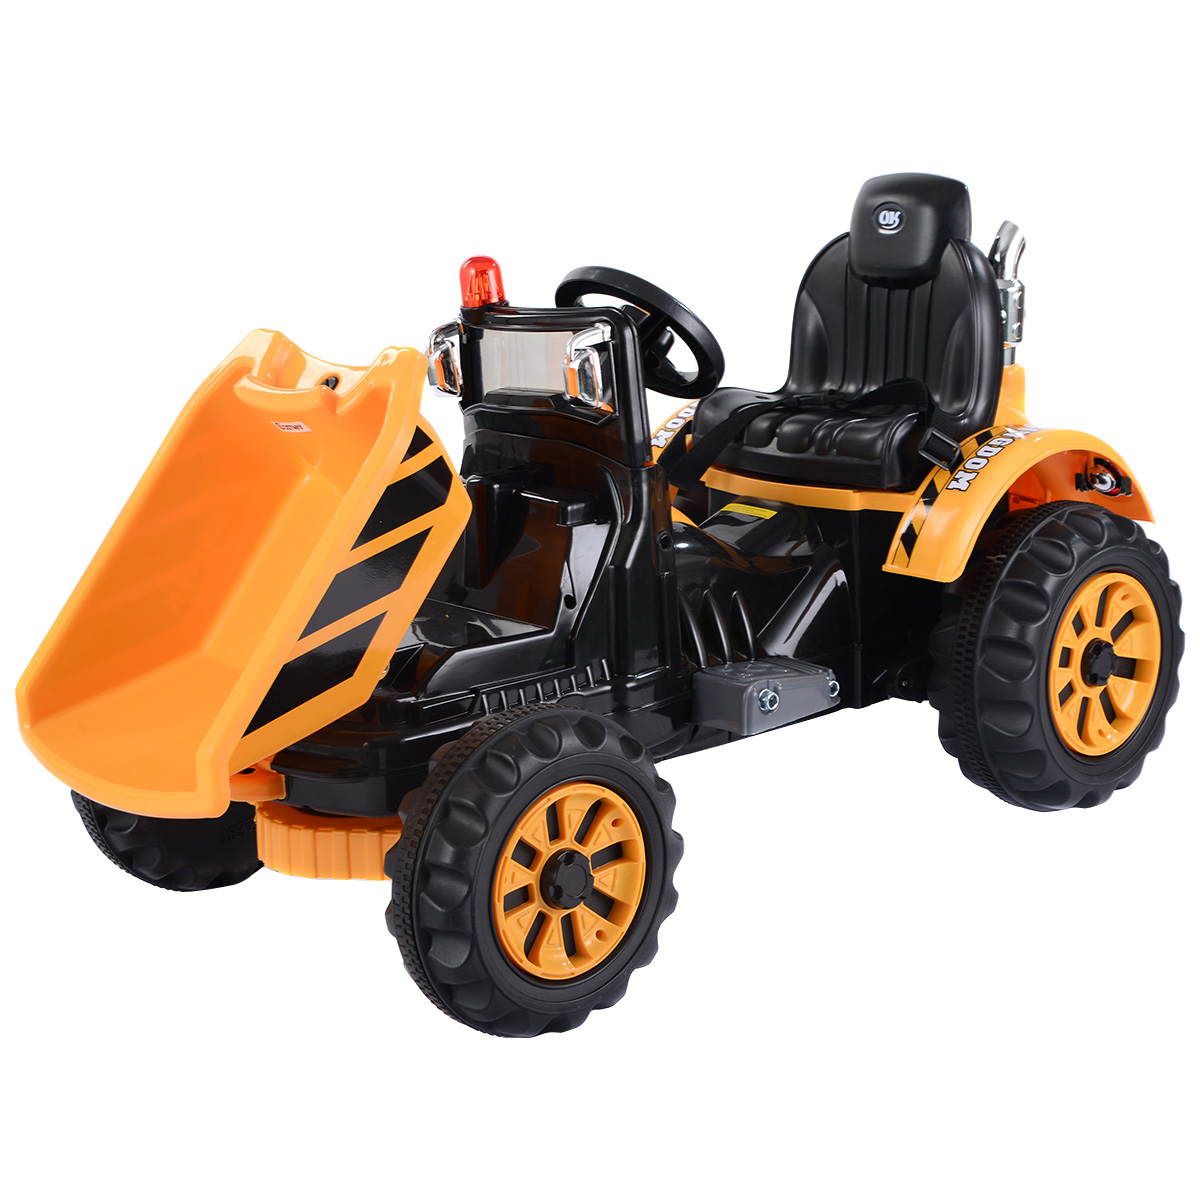 Costway 12V Battery Powered Kids Ride On Tipper Dumper Truck With Dump Bucket Yellow